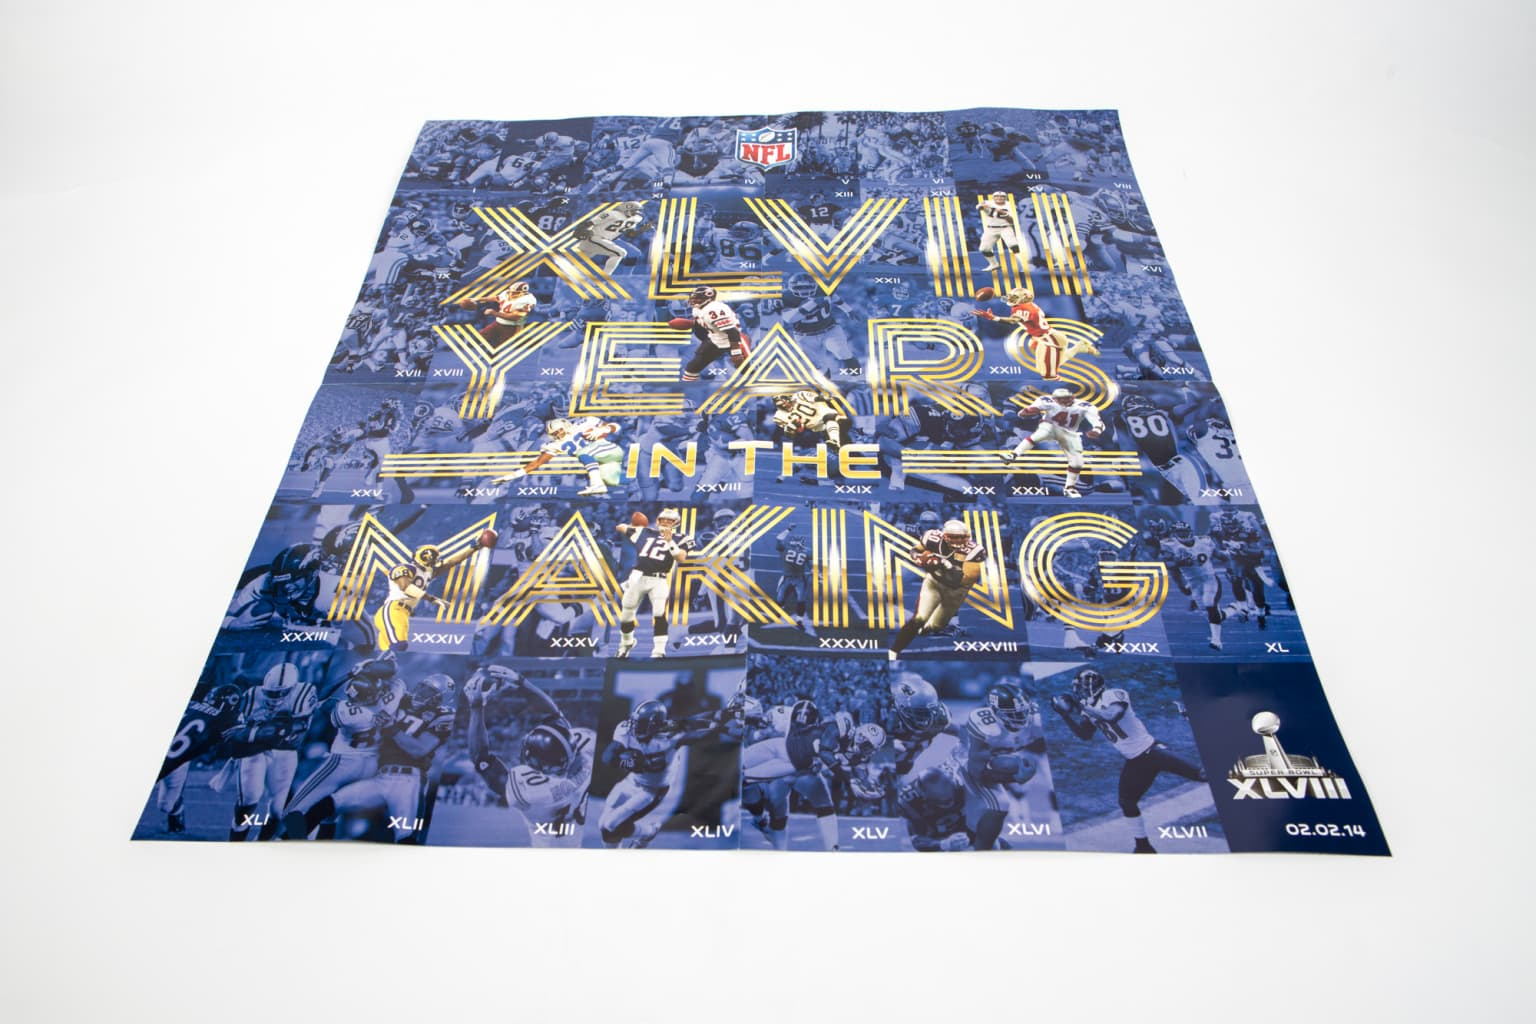 XLVIII Custom Typography